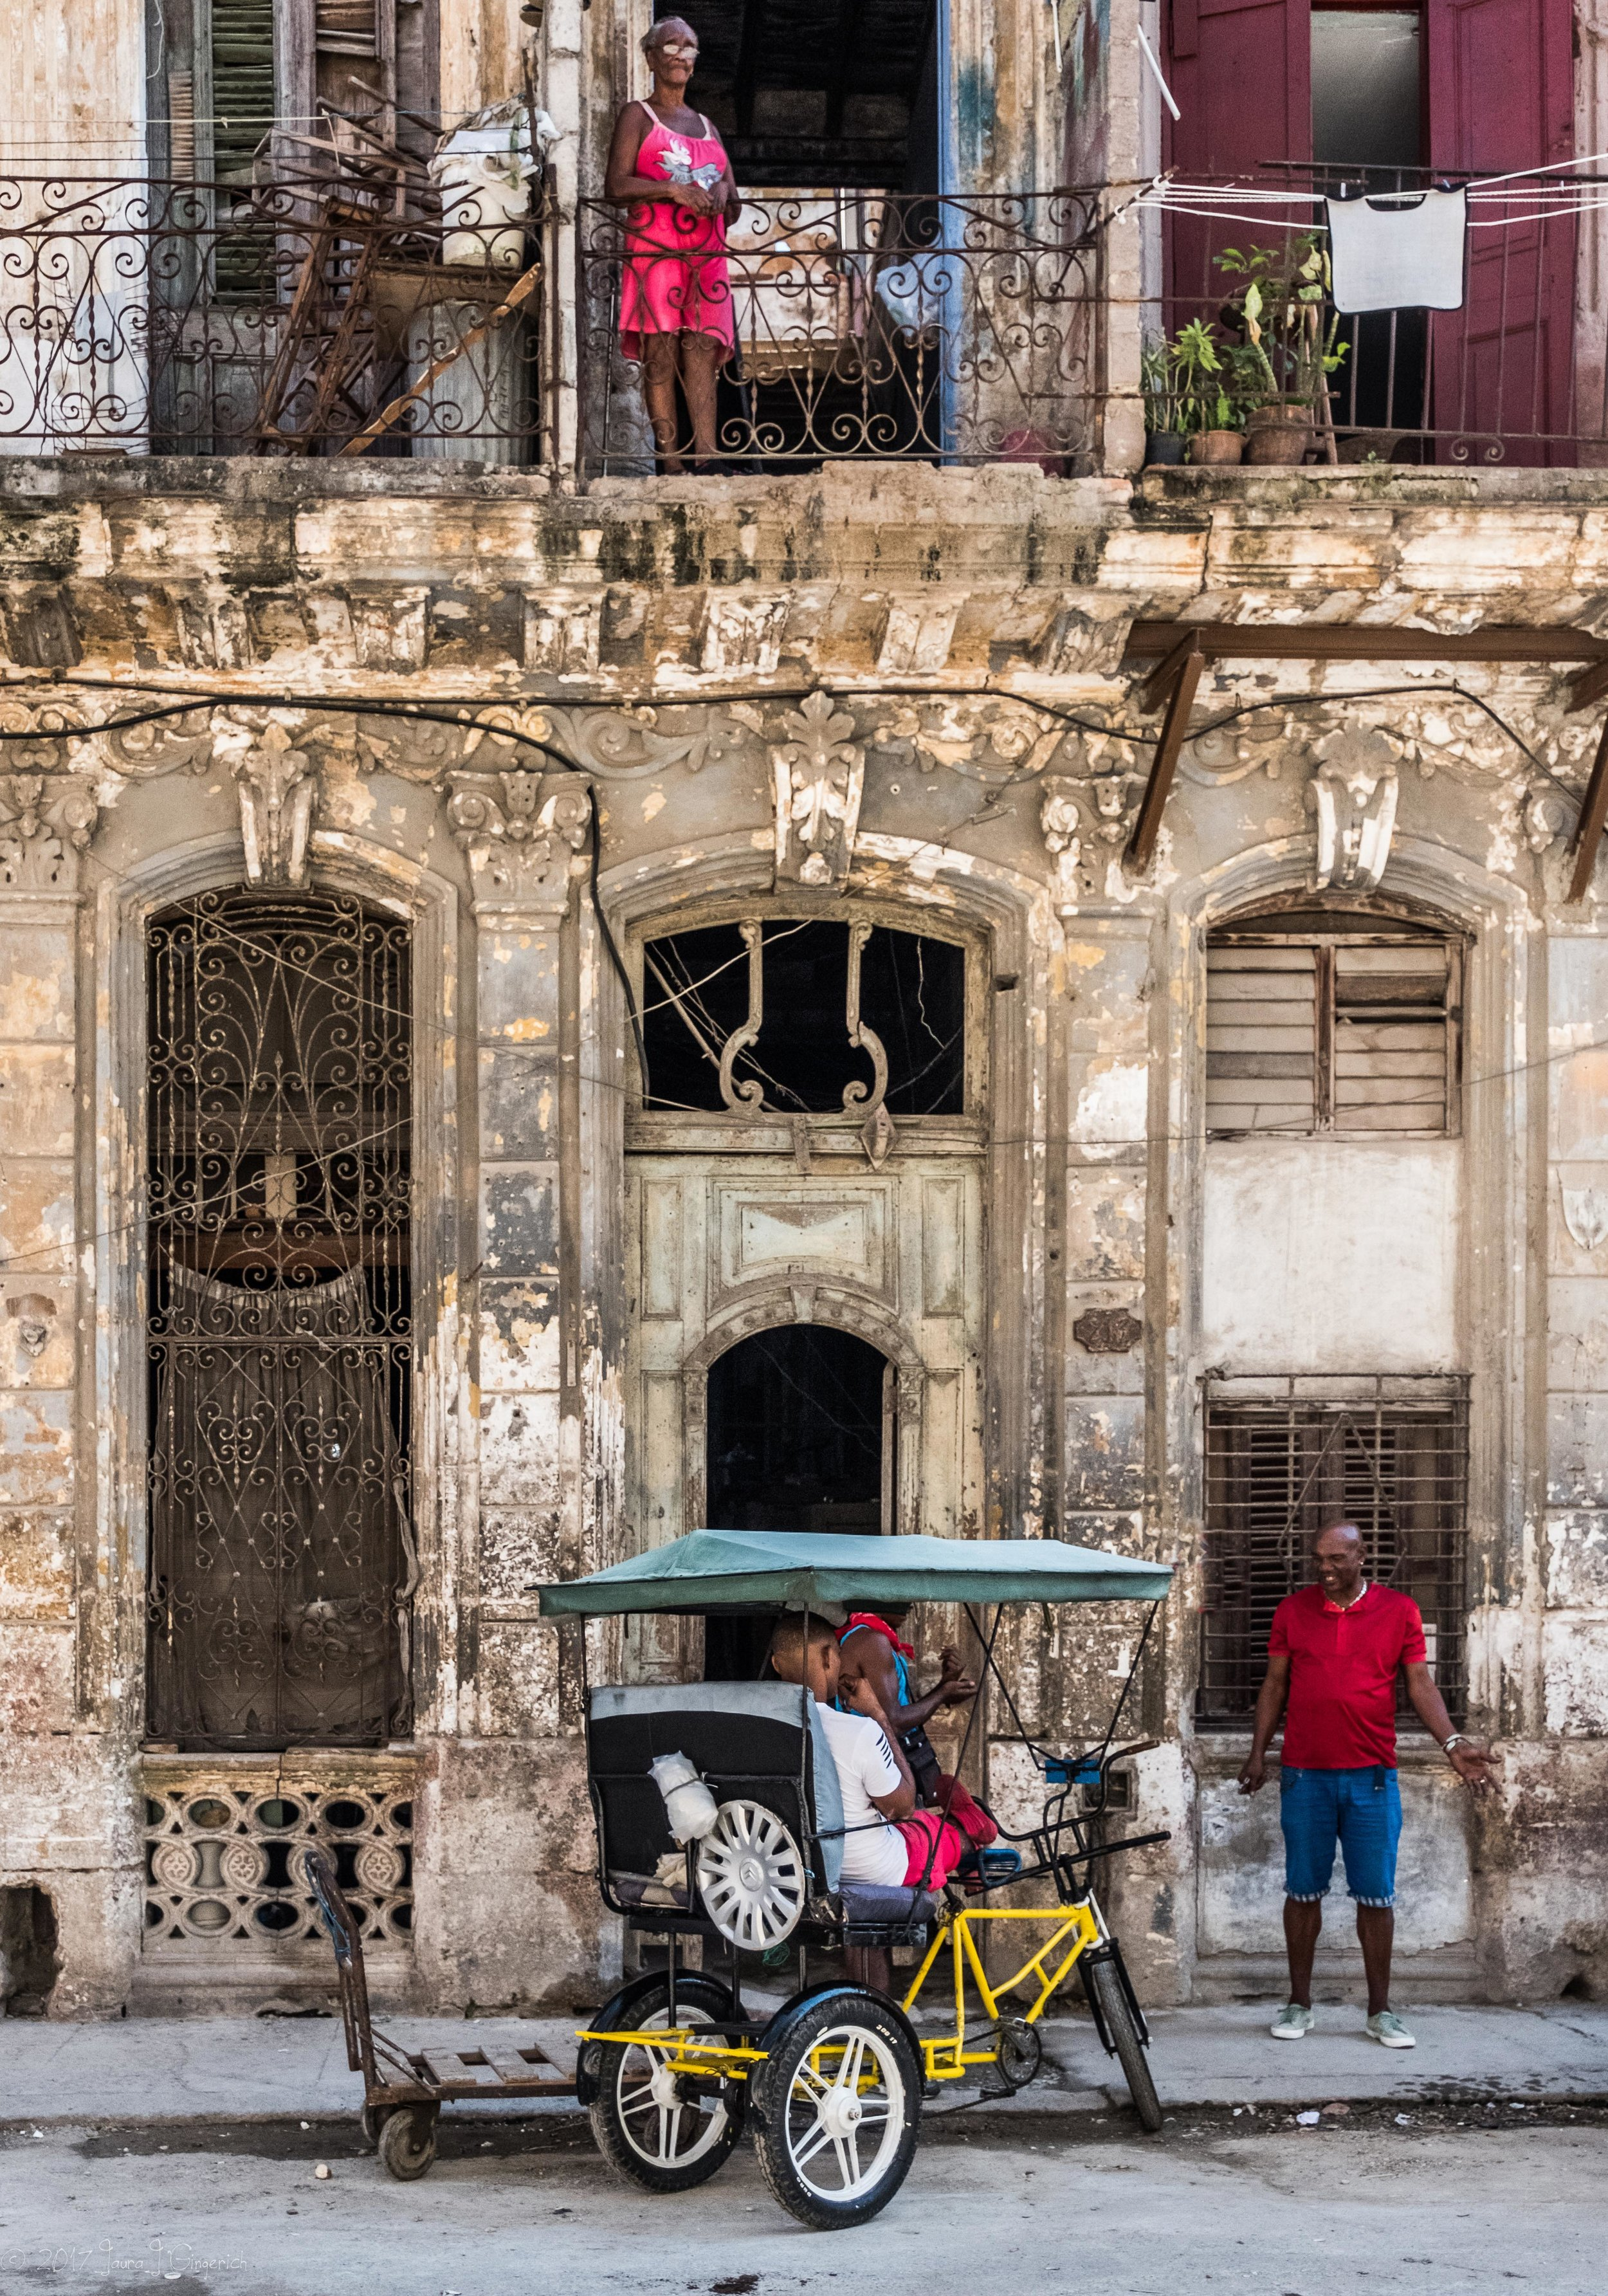 20171106 20171619 CUBA REAL AND RAW 0044.jpg